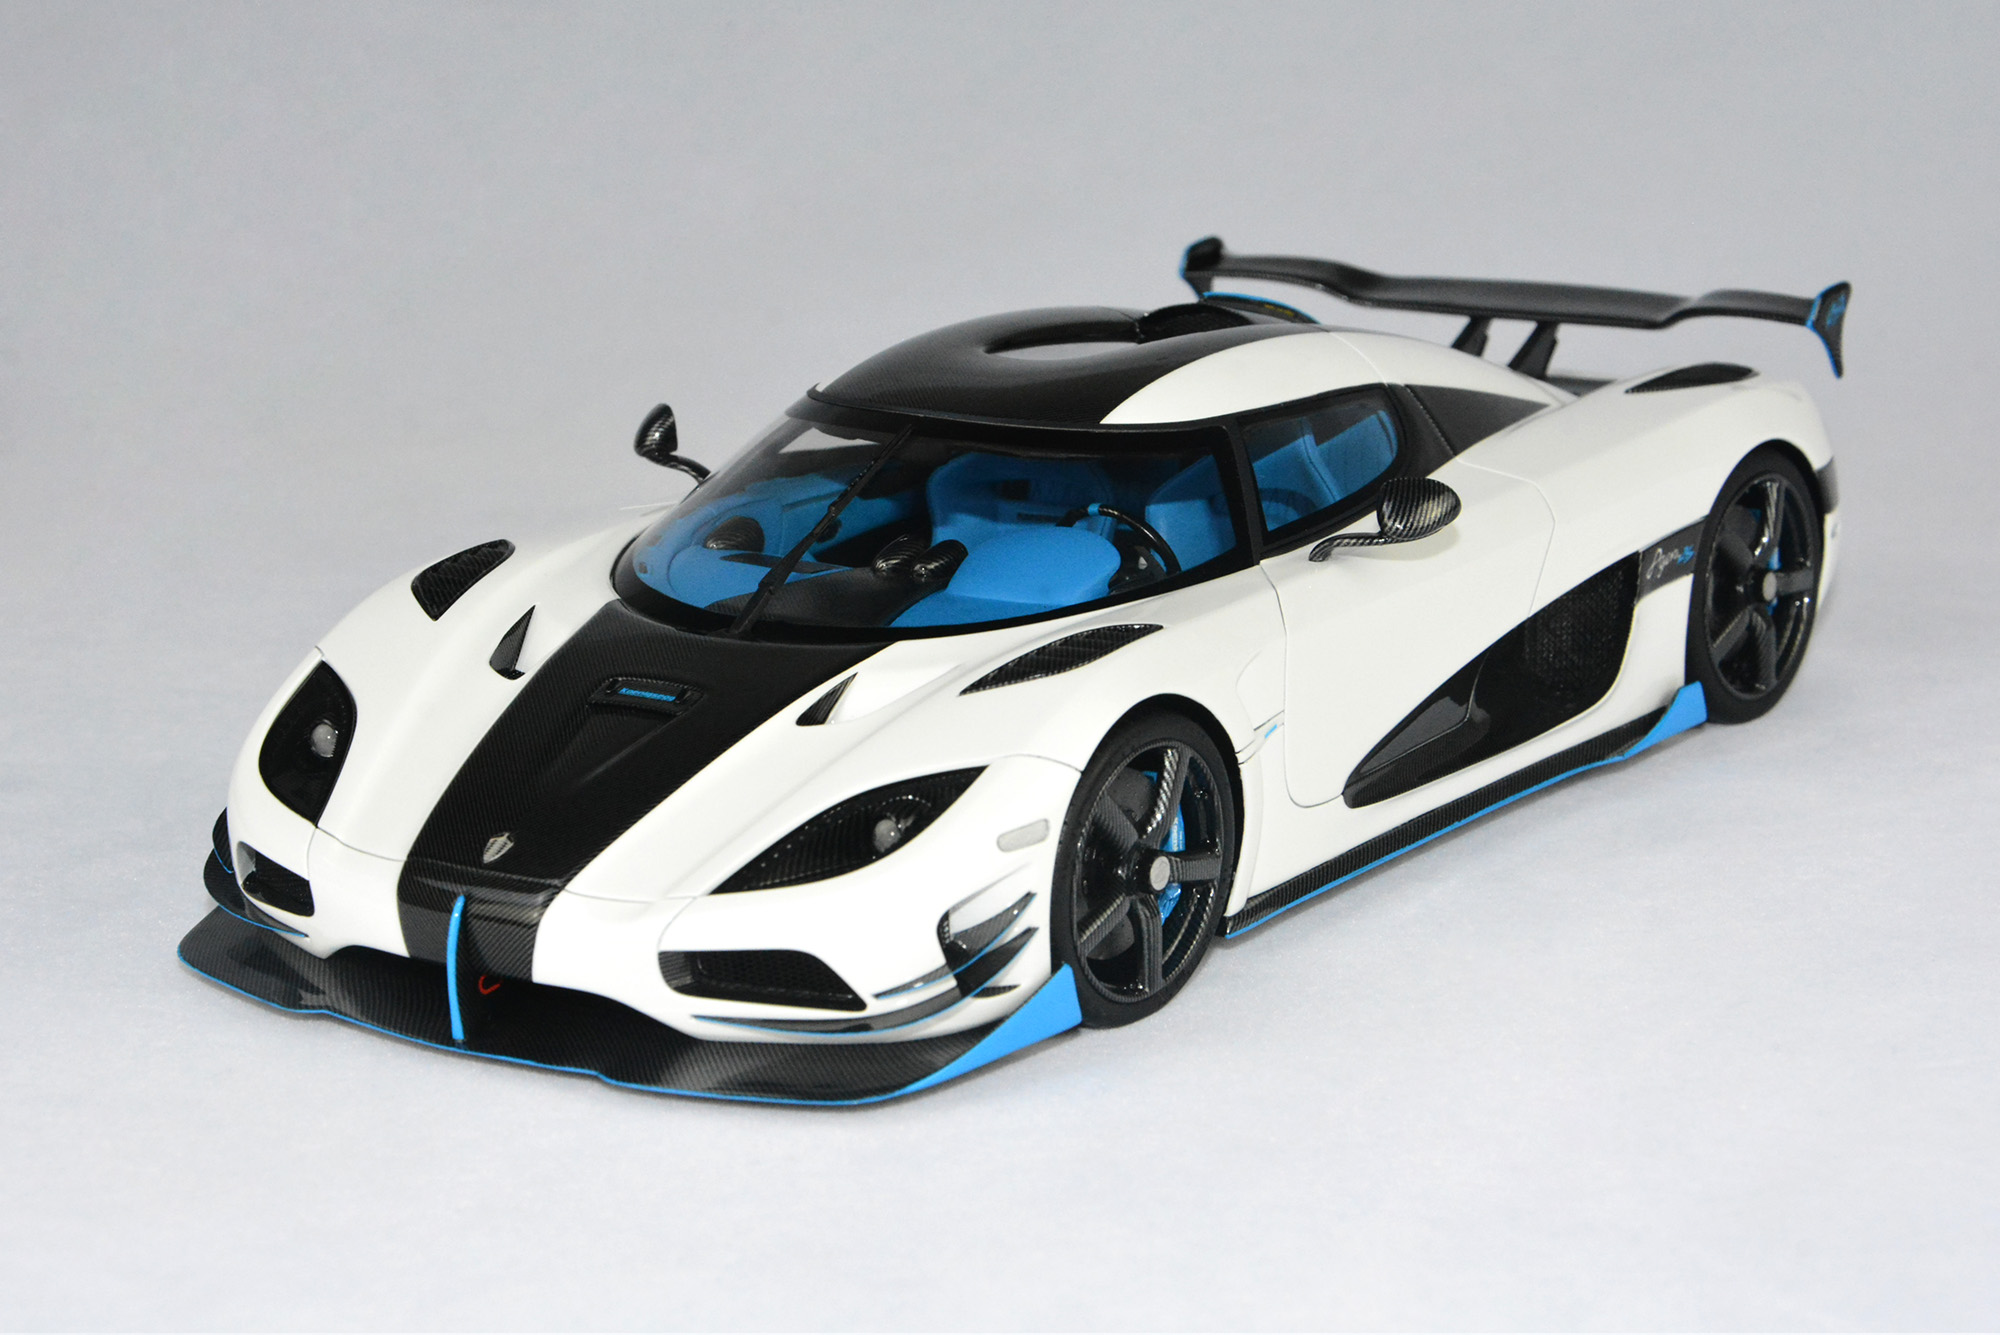 la nouvelle koenigsegg agera rs1 d voil e au new york auto show. Black Bedroom Furniture Sets. Home Design Ideas